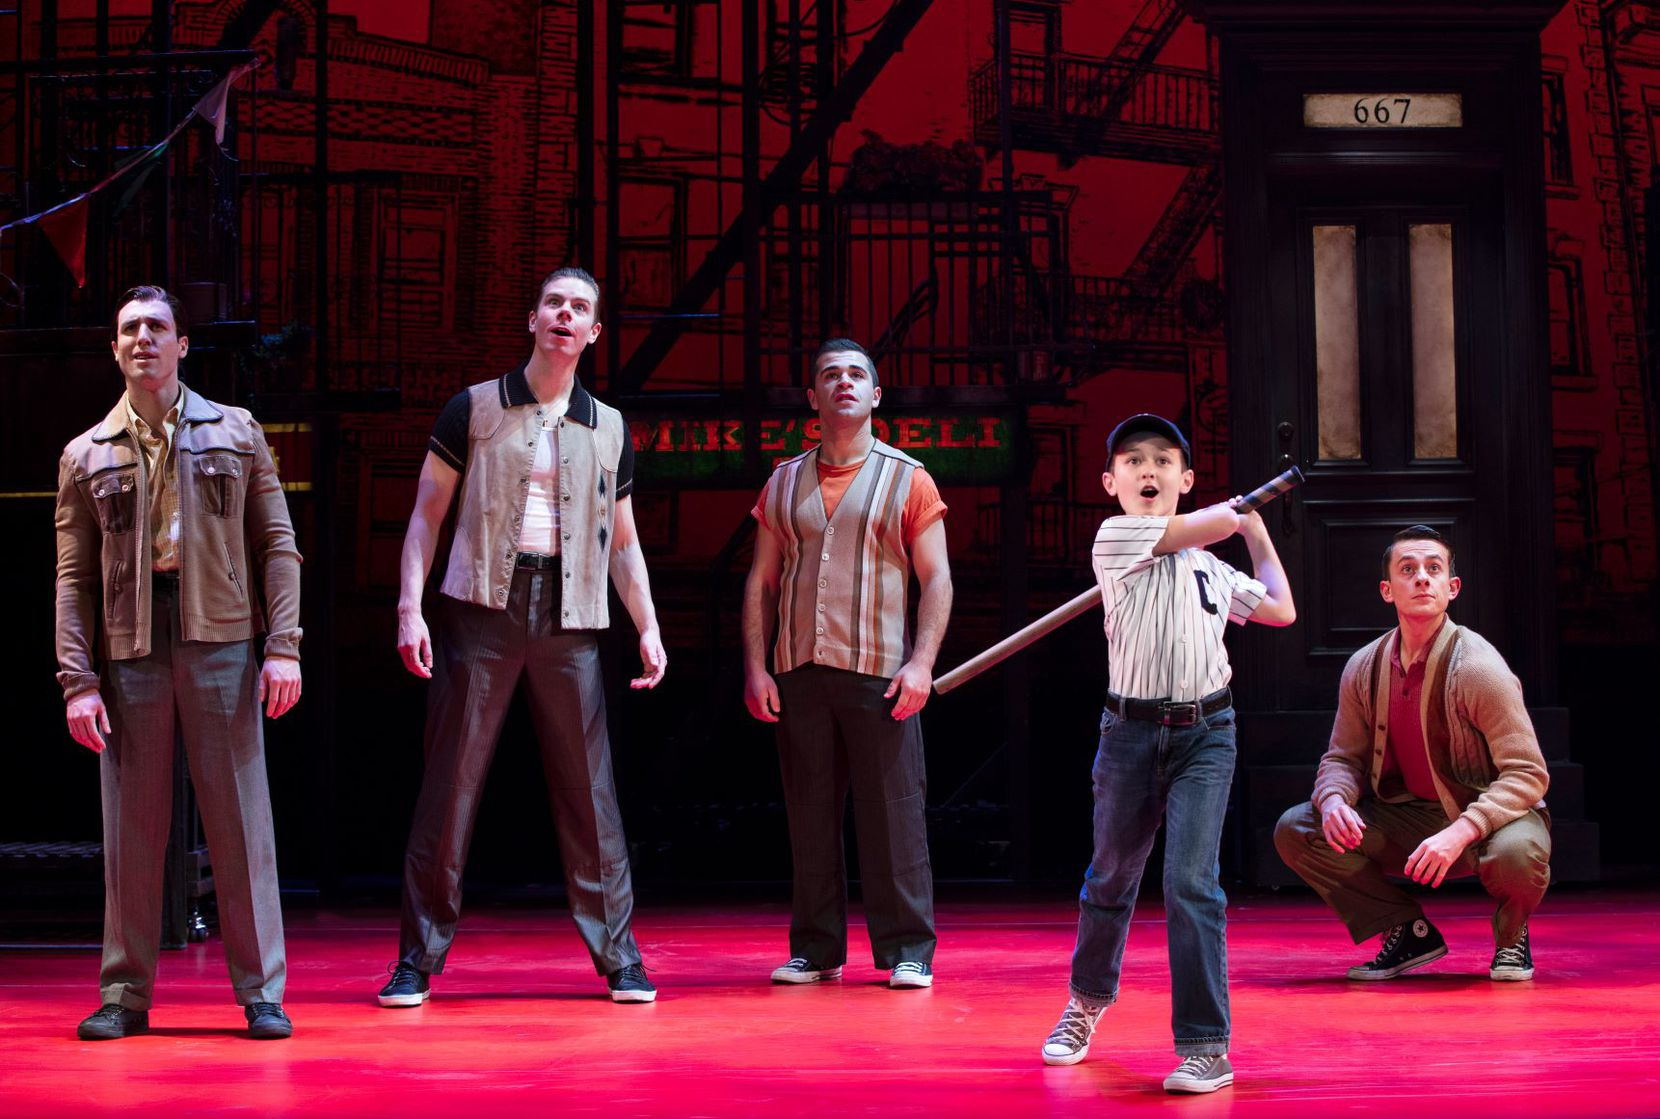 Frankie Leoni (second from right) and the musical A Bronx Tale  will be in Dallas at the Winspear Opera House from Dec. 23 to Jan. 6.